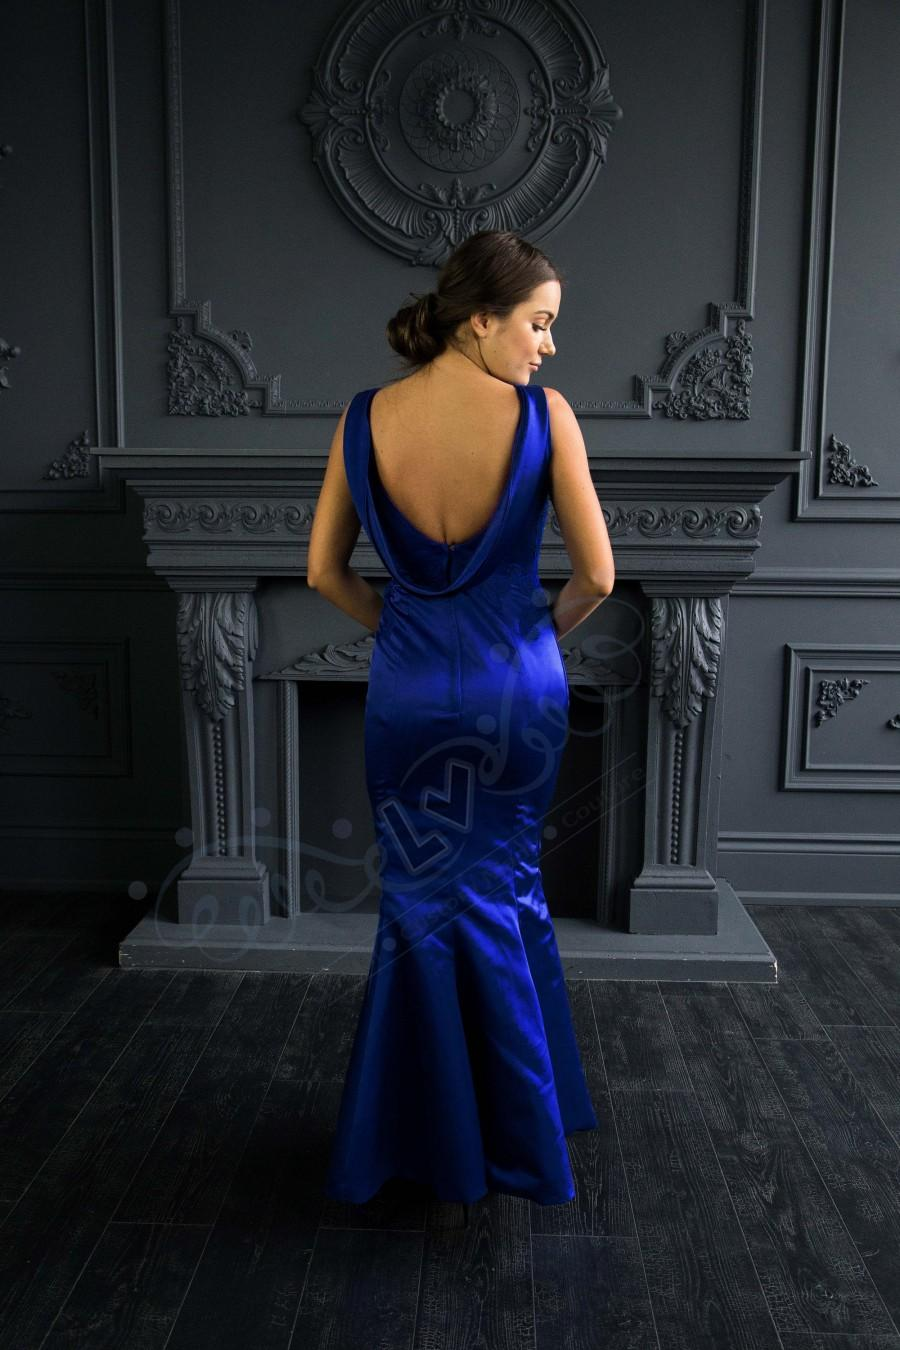 Mariage - Royal blue bridesmaid dress with lace details and cowl back